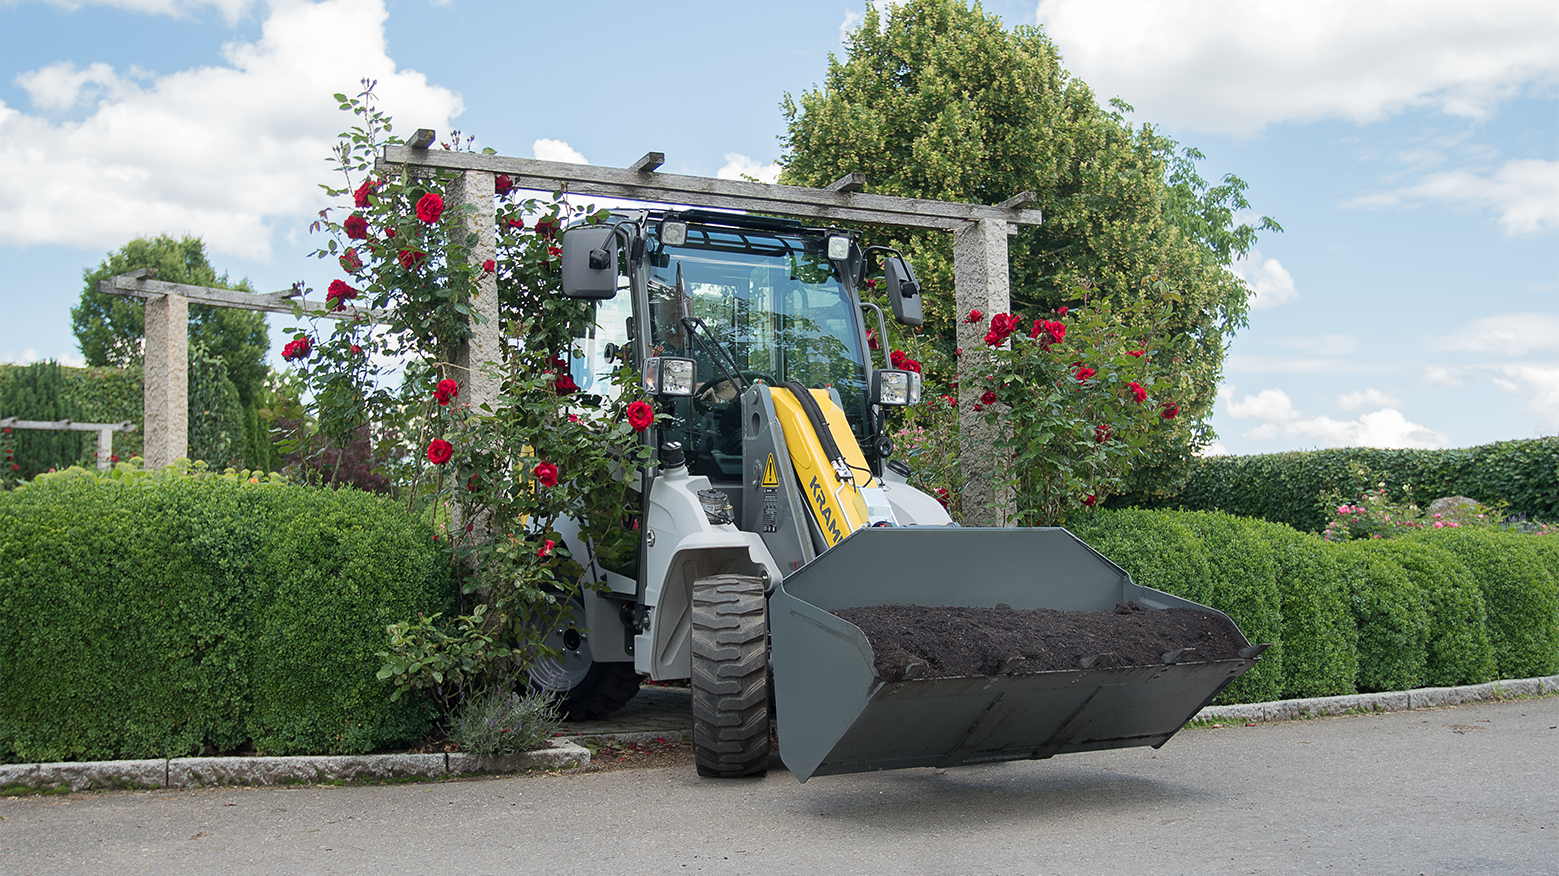 Gallery image 0 - **The compact genius redefined - exhaust emission stage V**  The 5035 is a compact and manoeuvrable wheel loader. With its dimensions it is predestined for low clearance heights and tight passages. This machine is also transportable on a car trailer due to its low transport weight.